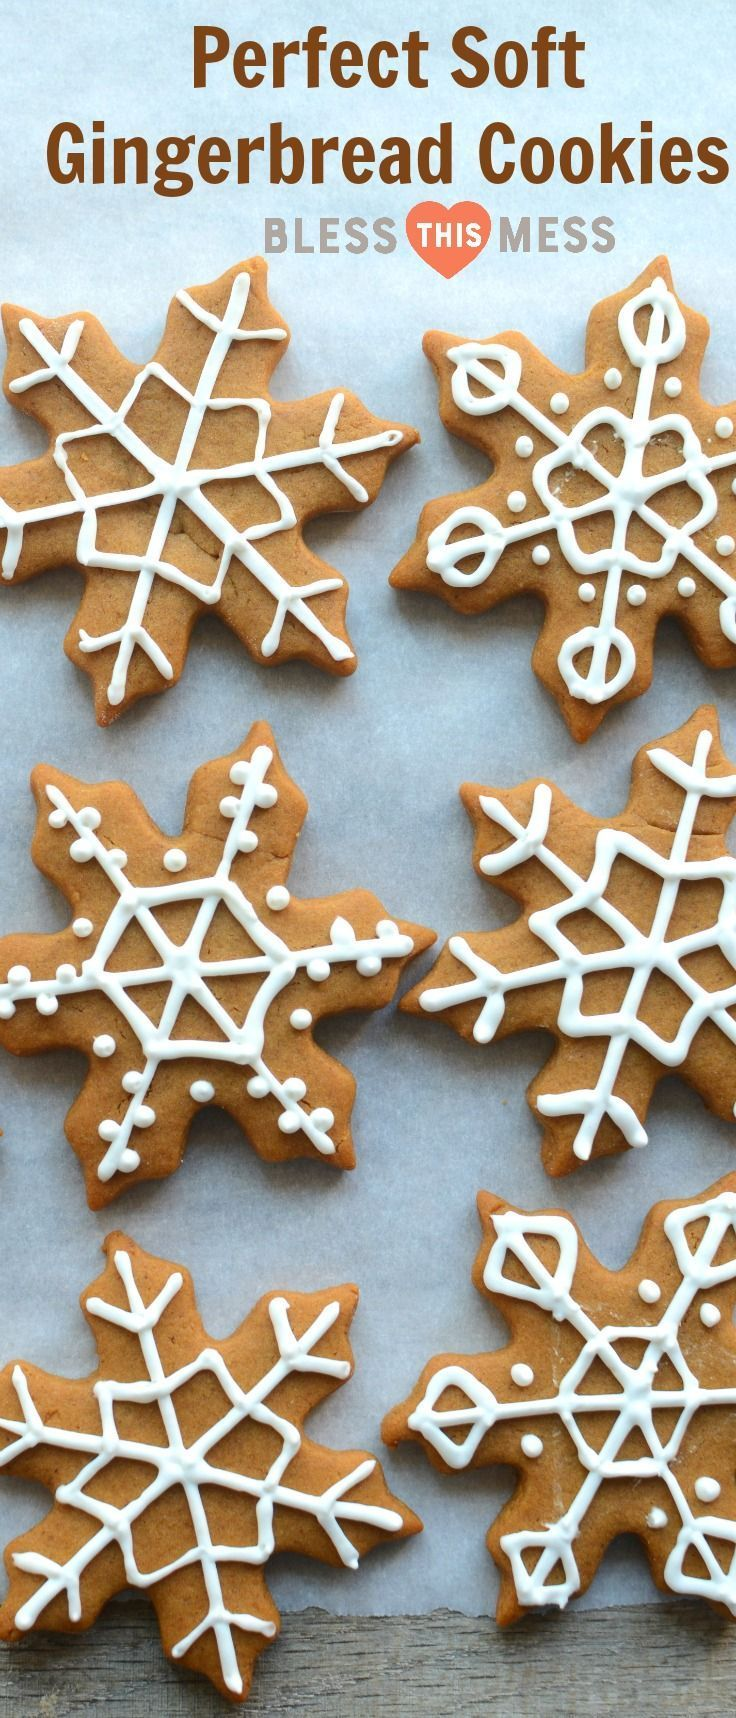 These soft gingerbread cookies are sweet, soft, lightly spiced, and the perfect cut-out cookie recipe.